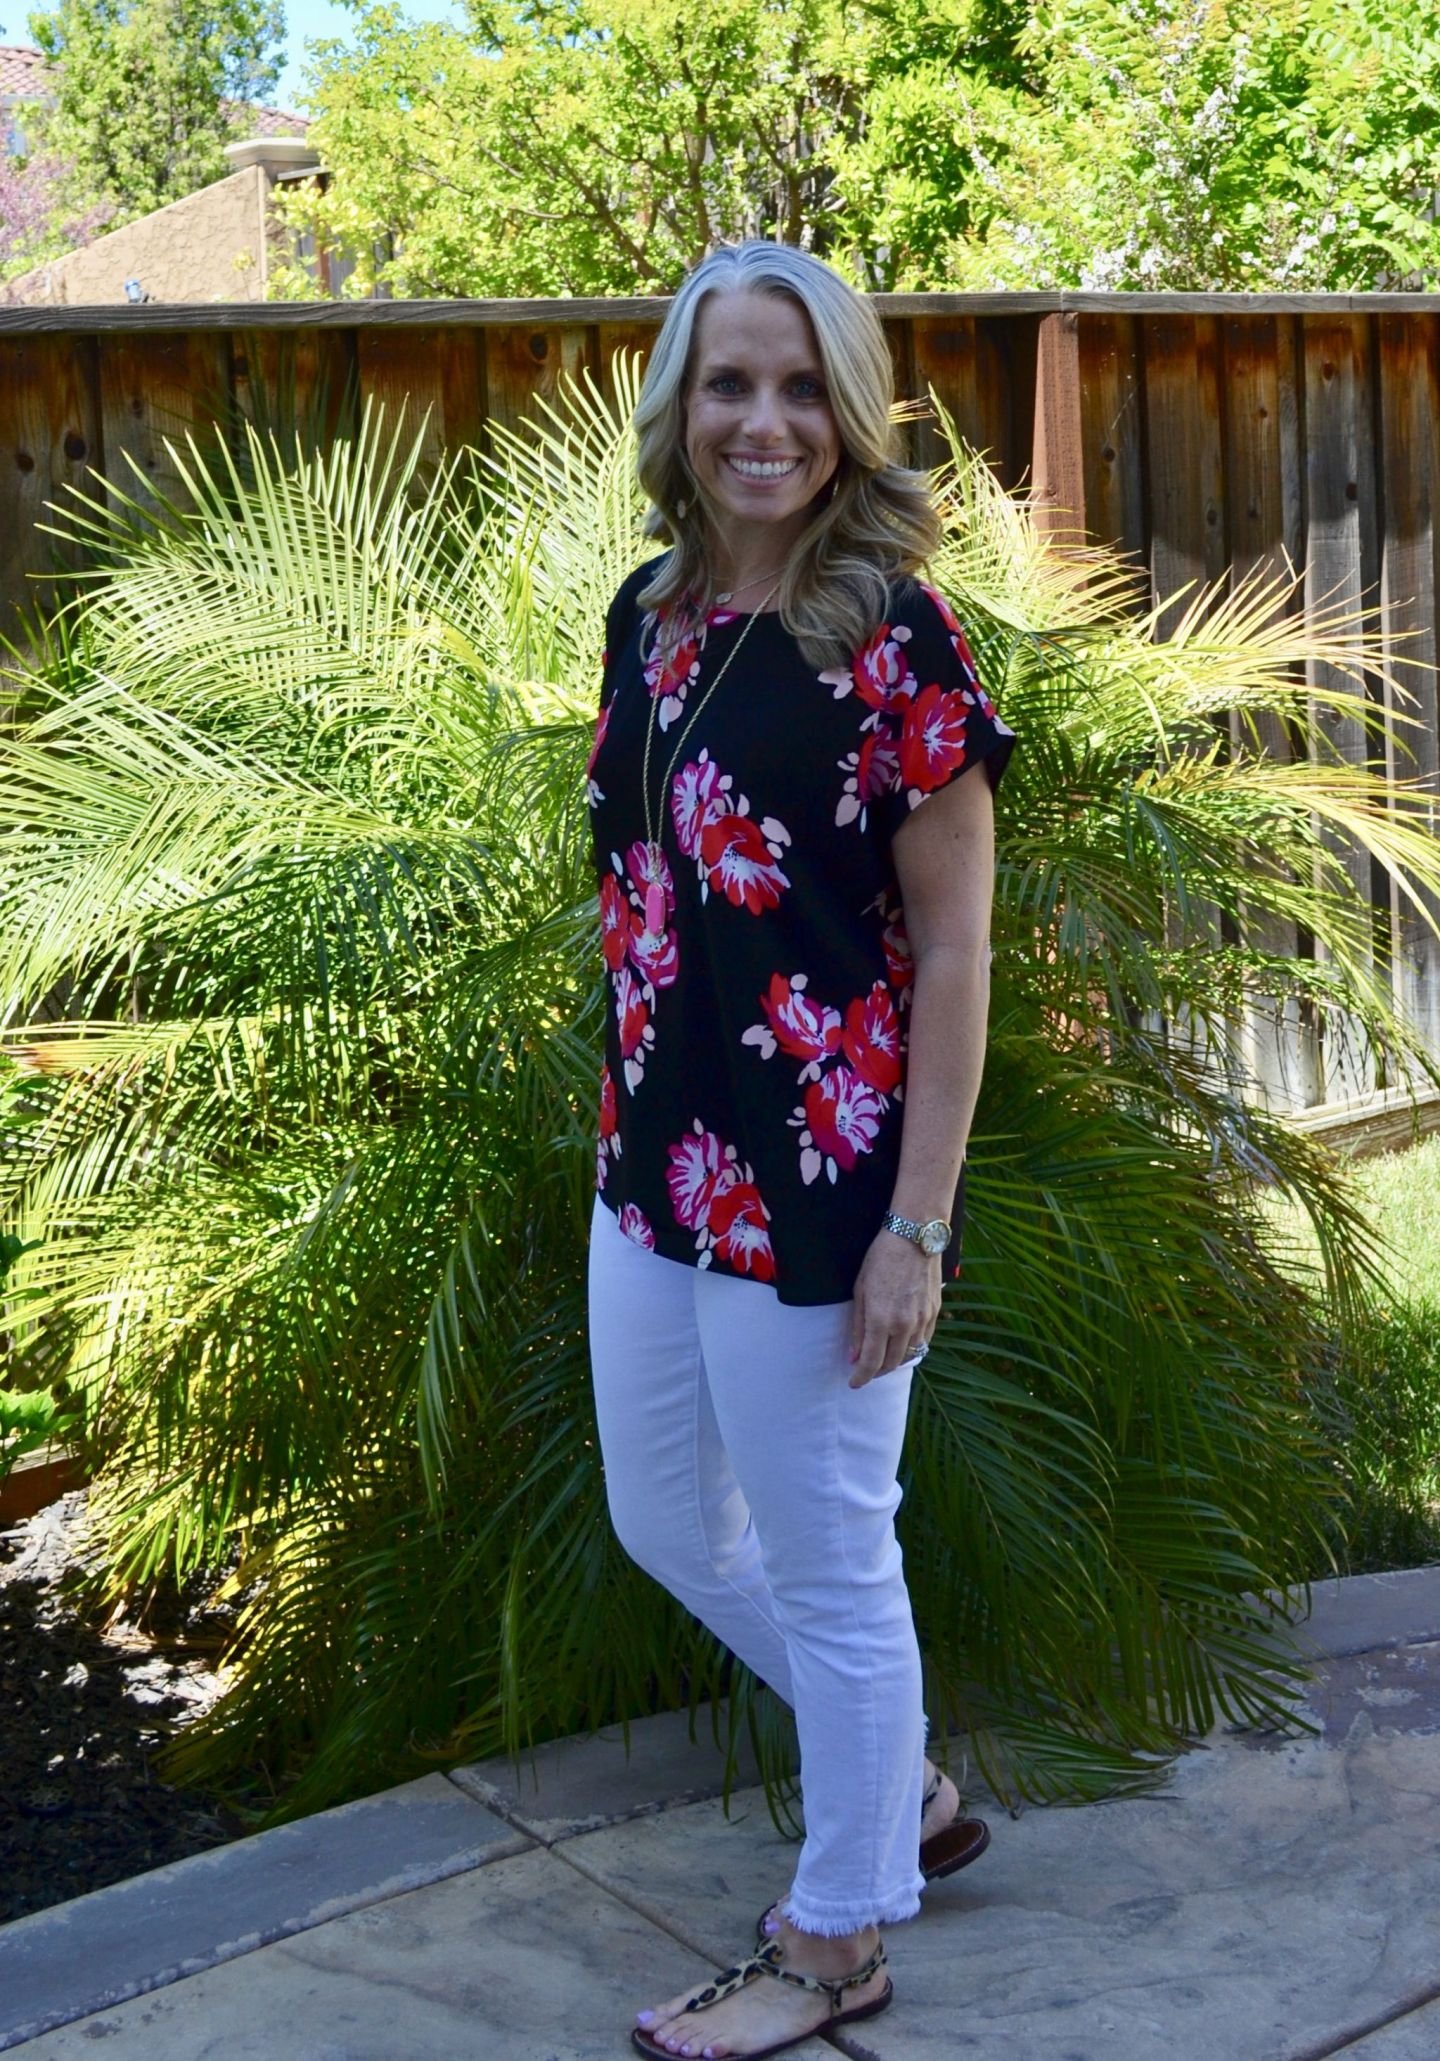 White Loft jeans and floral top